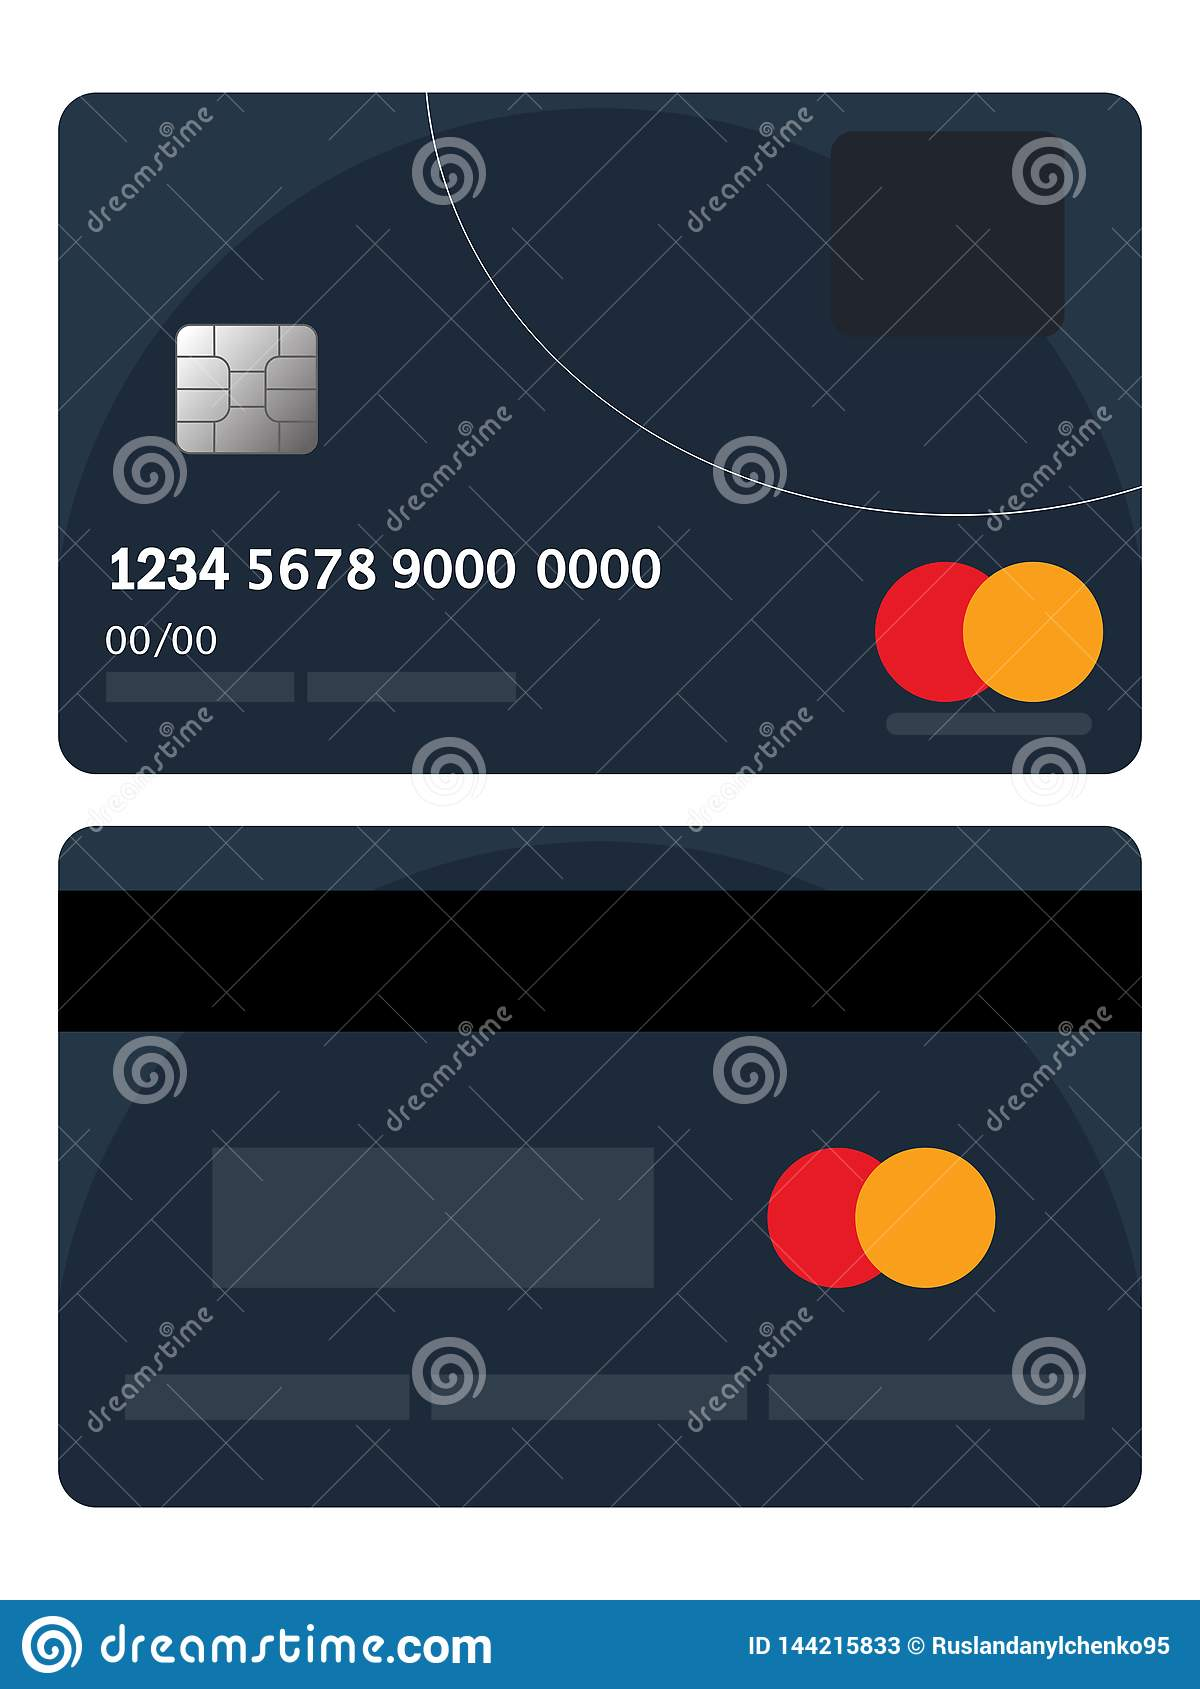 Credit Card Offers For Bad Credit >> Credit Card Badge Vector Bad Credit Card Badge Flat Design